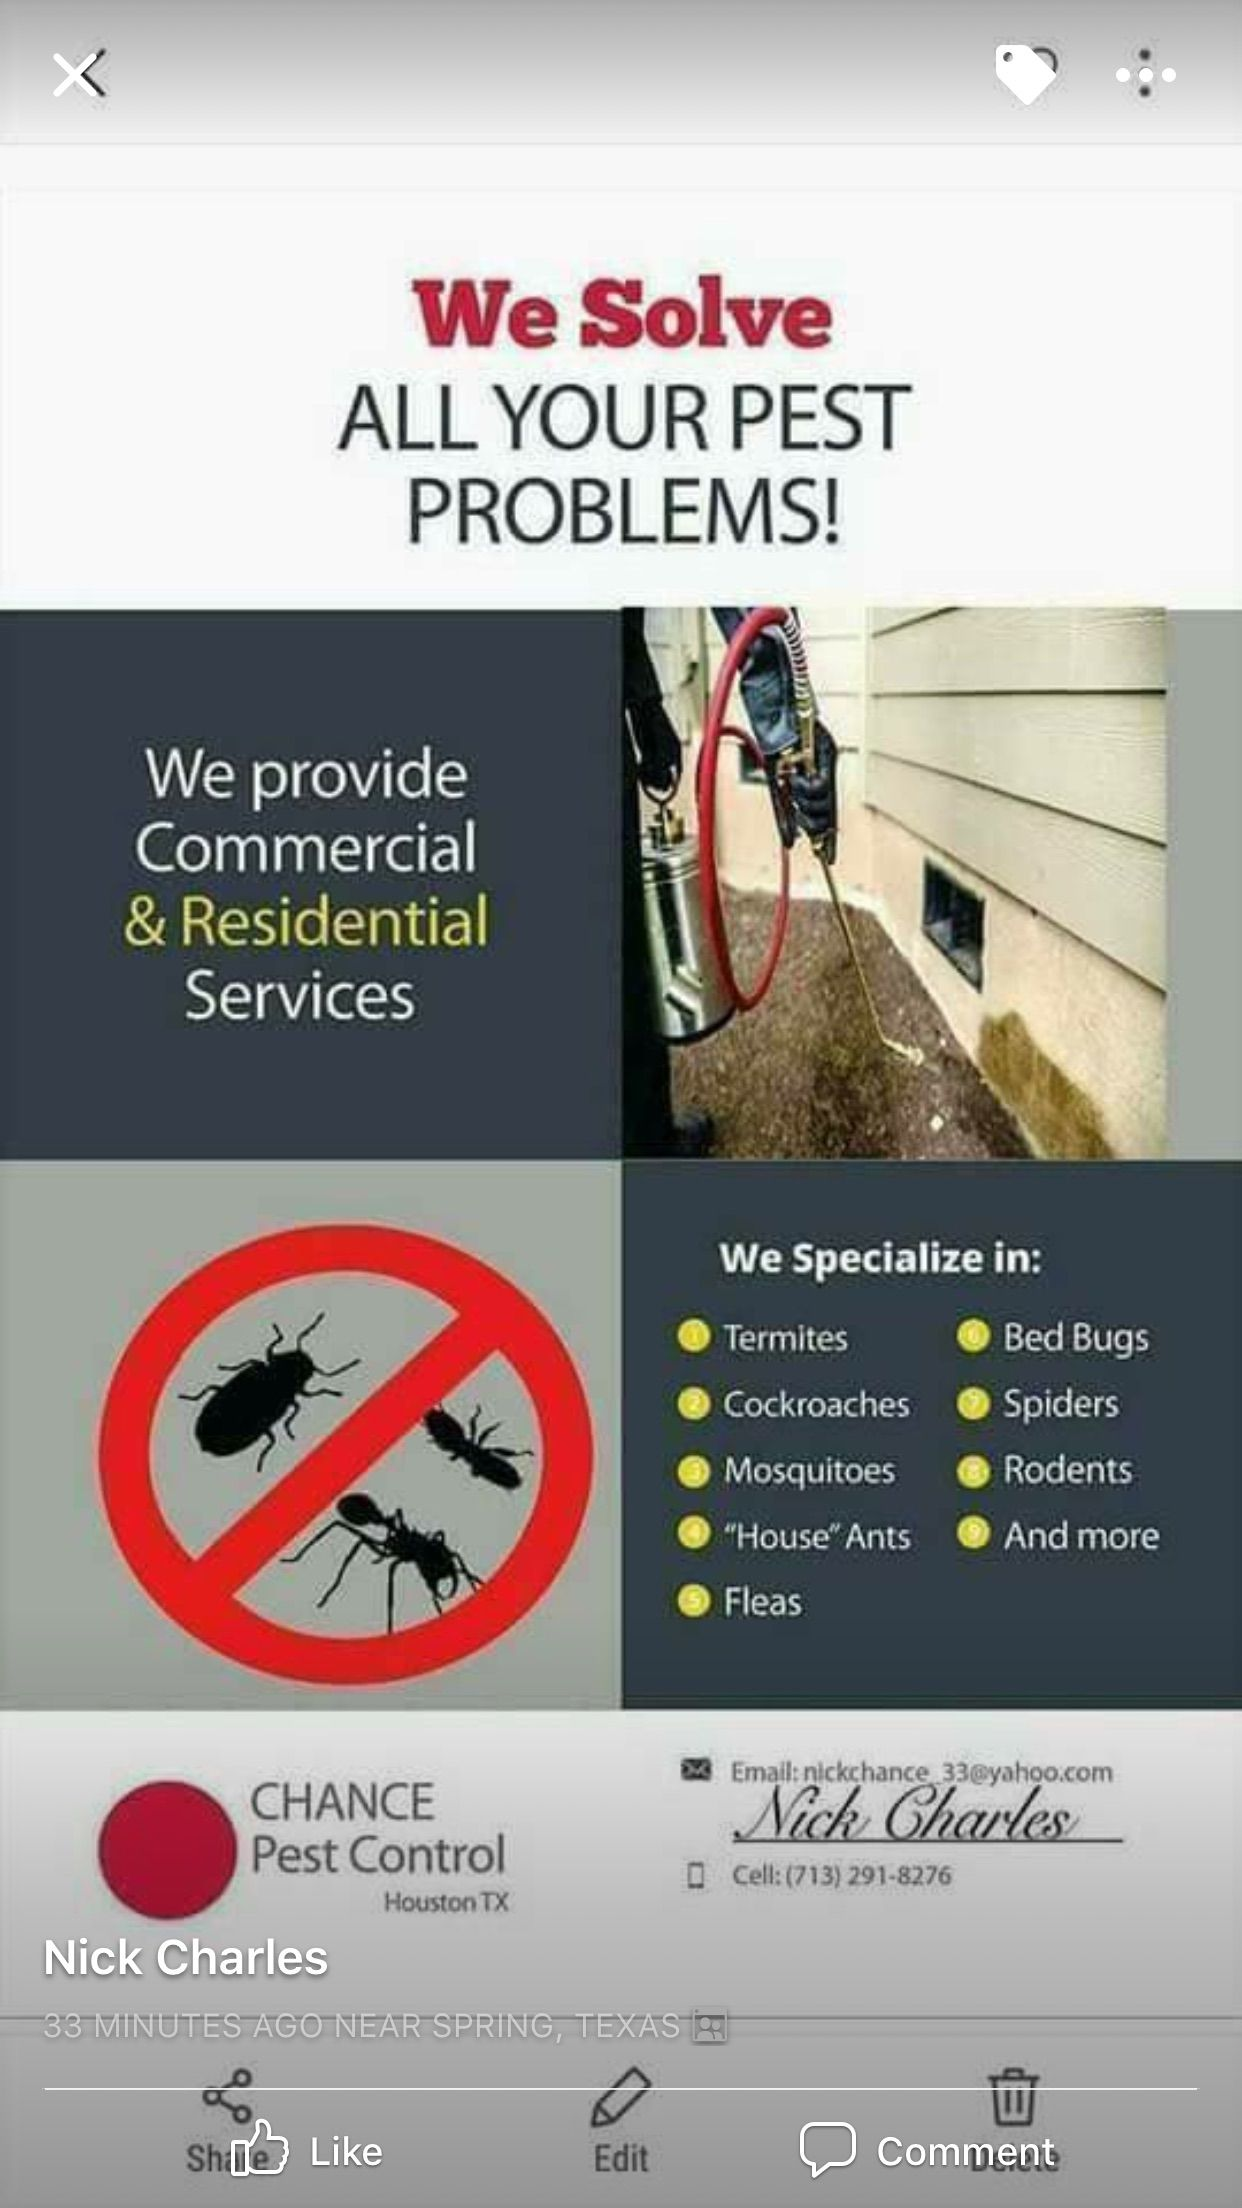 Pin by Teena Hartman on Contacts Pest problem, Ants in